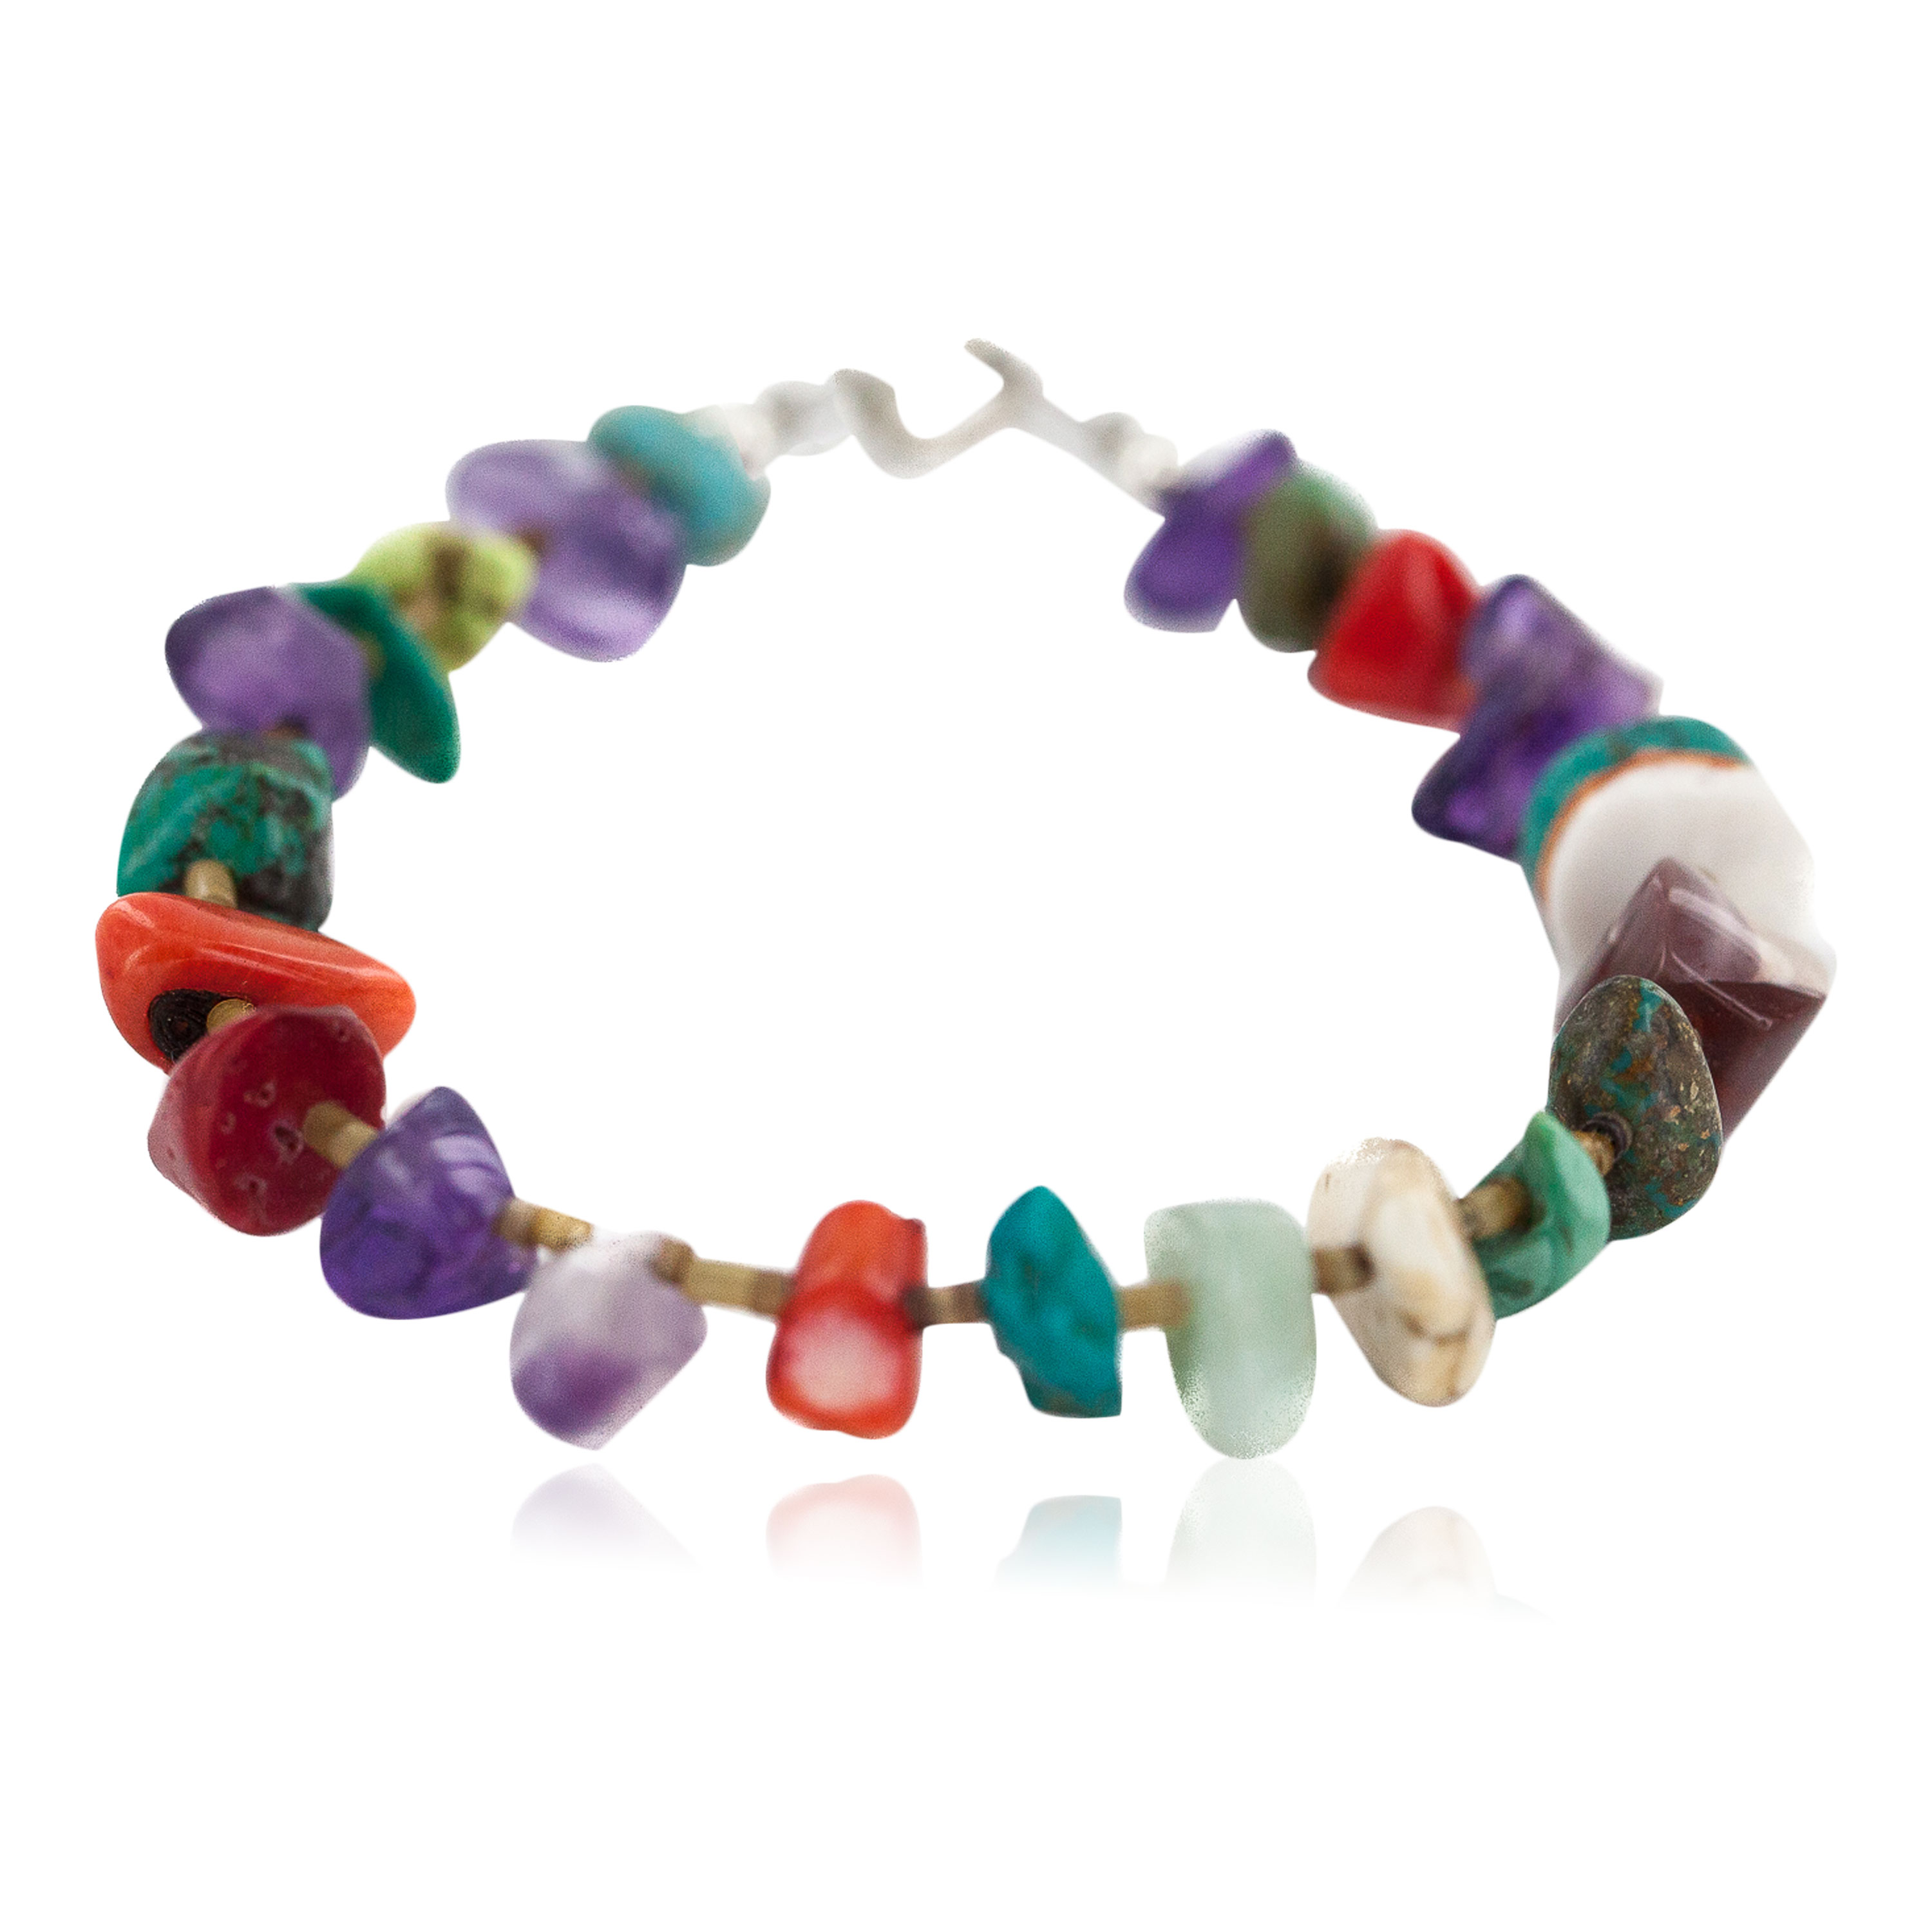 .925 Sterling Silver Navajo Certified Authentic Natural Turquoise Multicolor Stones Native American Bracelet 13174-1 All Products NB160514192249 13174-1 (by LomaSiiva)